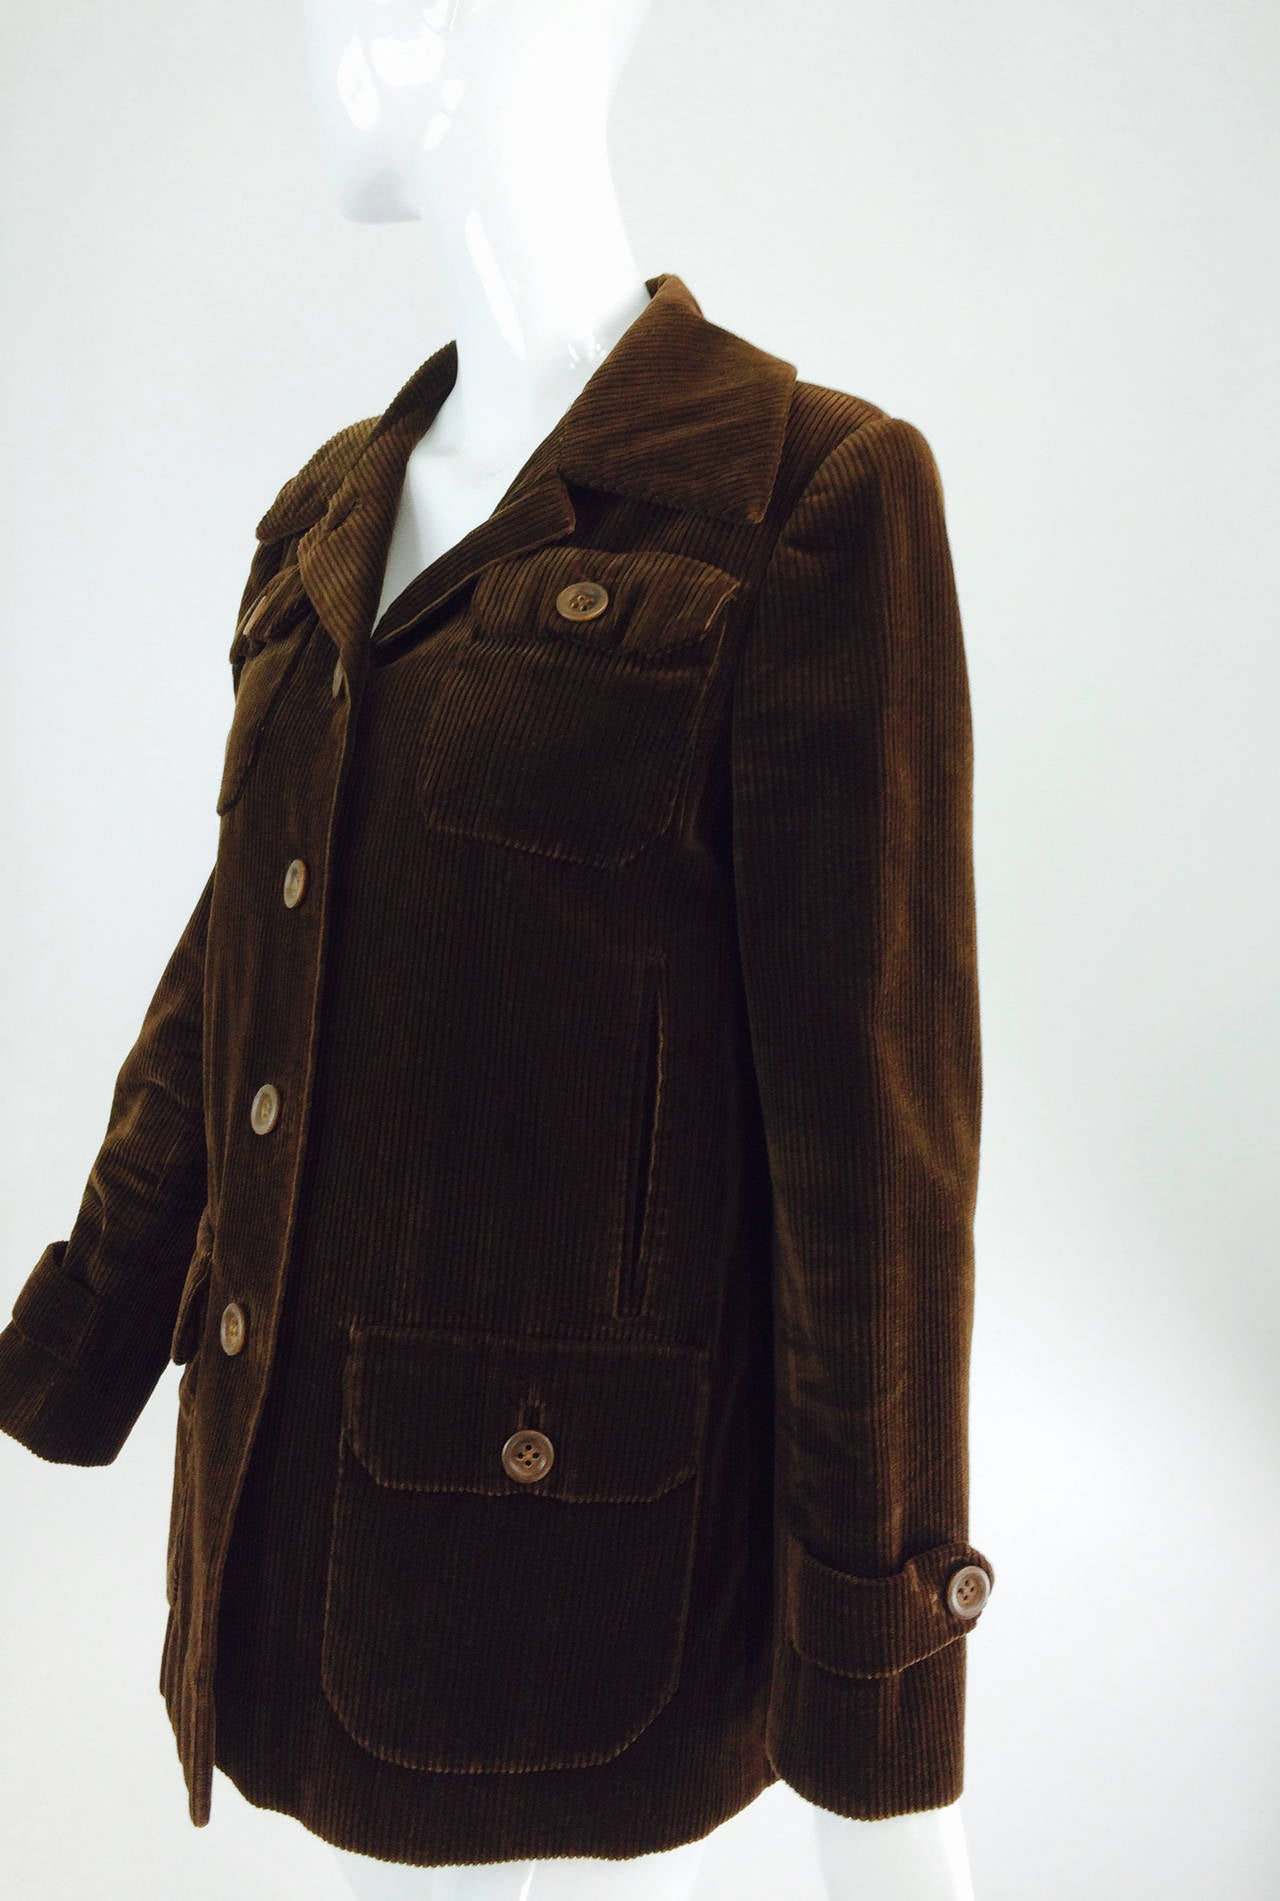 Women's Bill Blass chocolate brown corduroy country jacket early 1970s For Sale